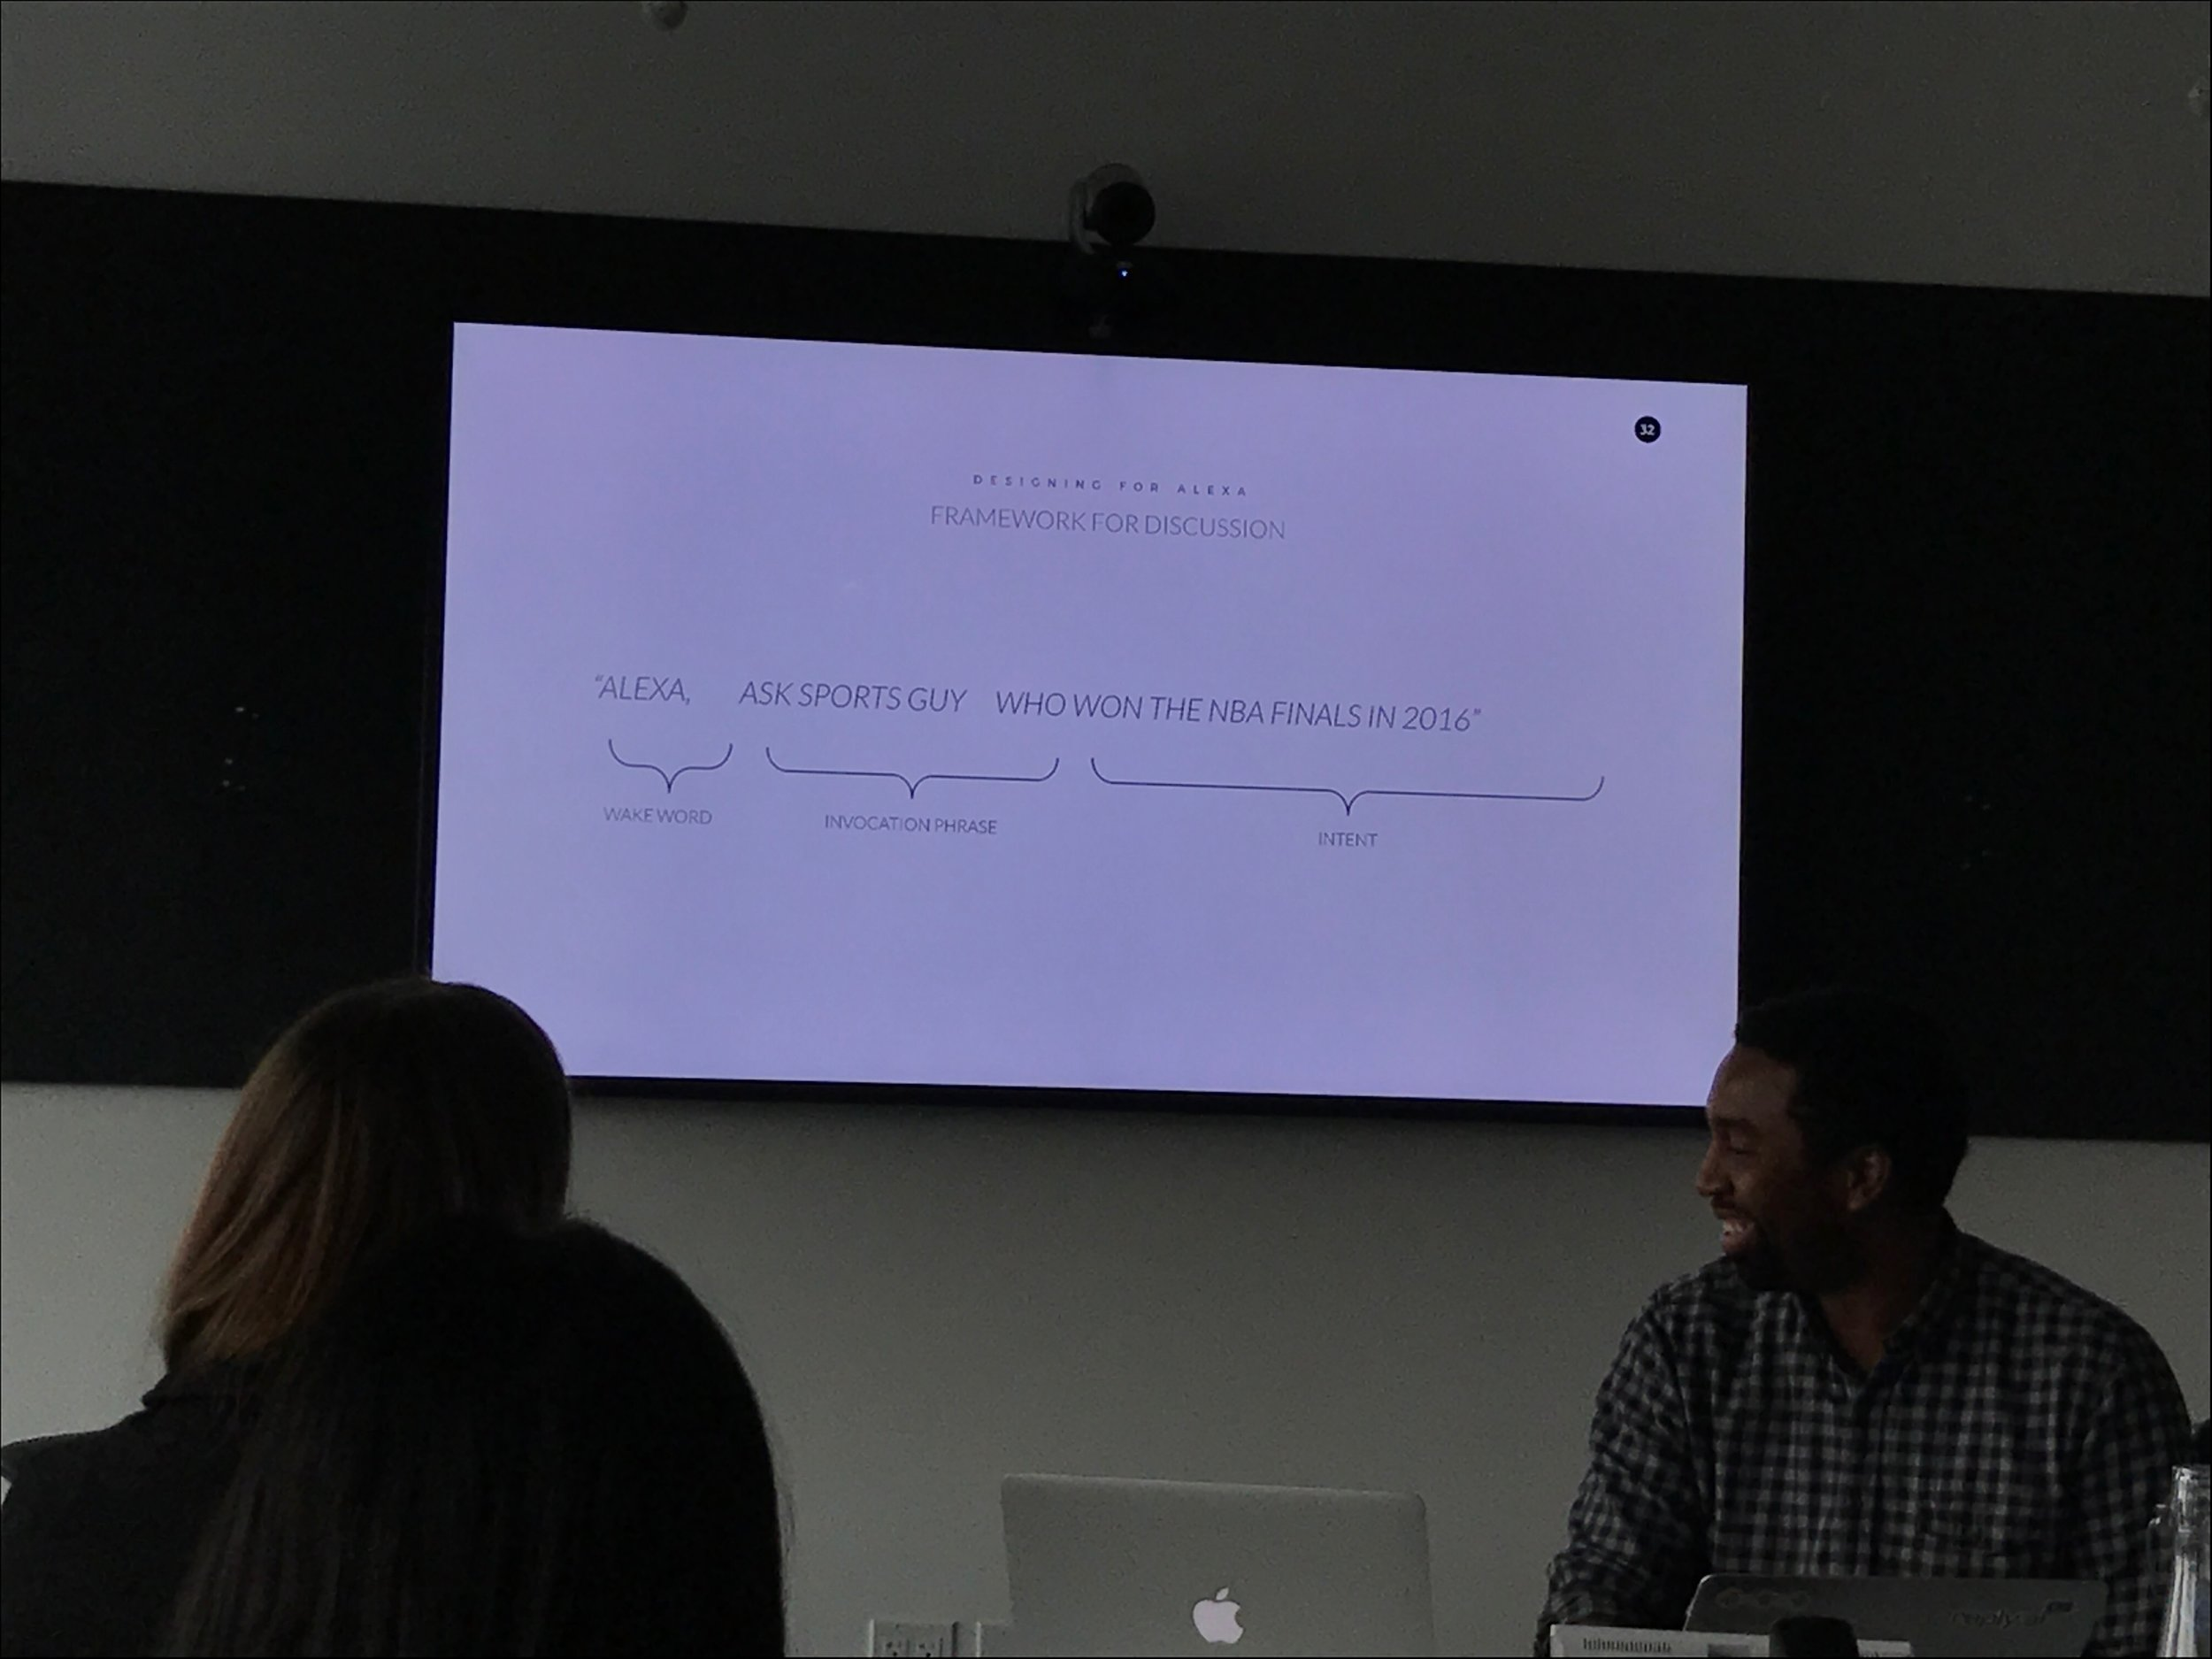 Learning all about the structure of an Alexa command.